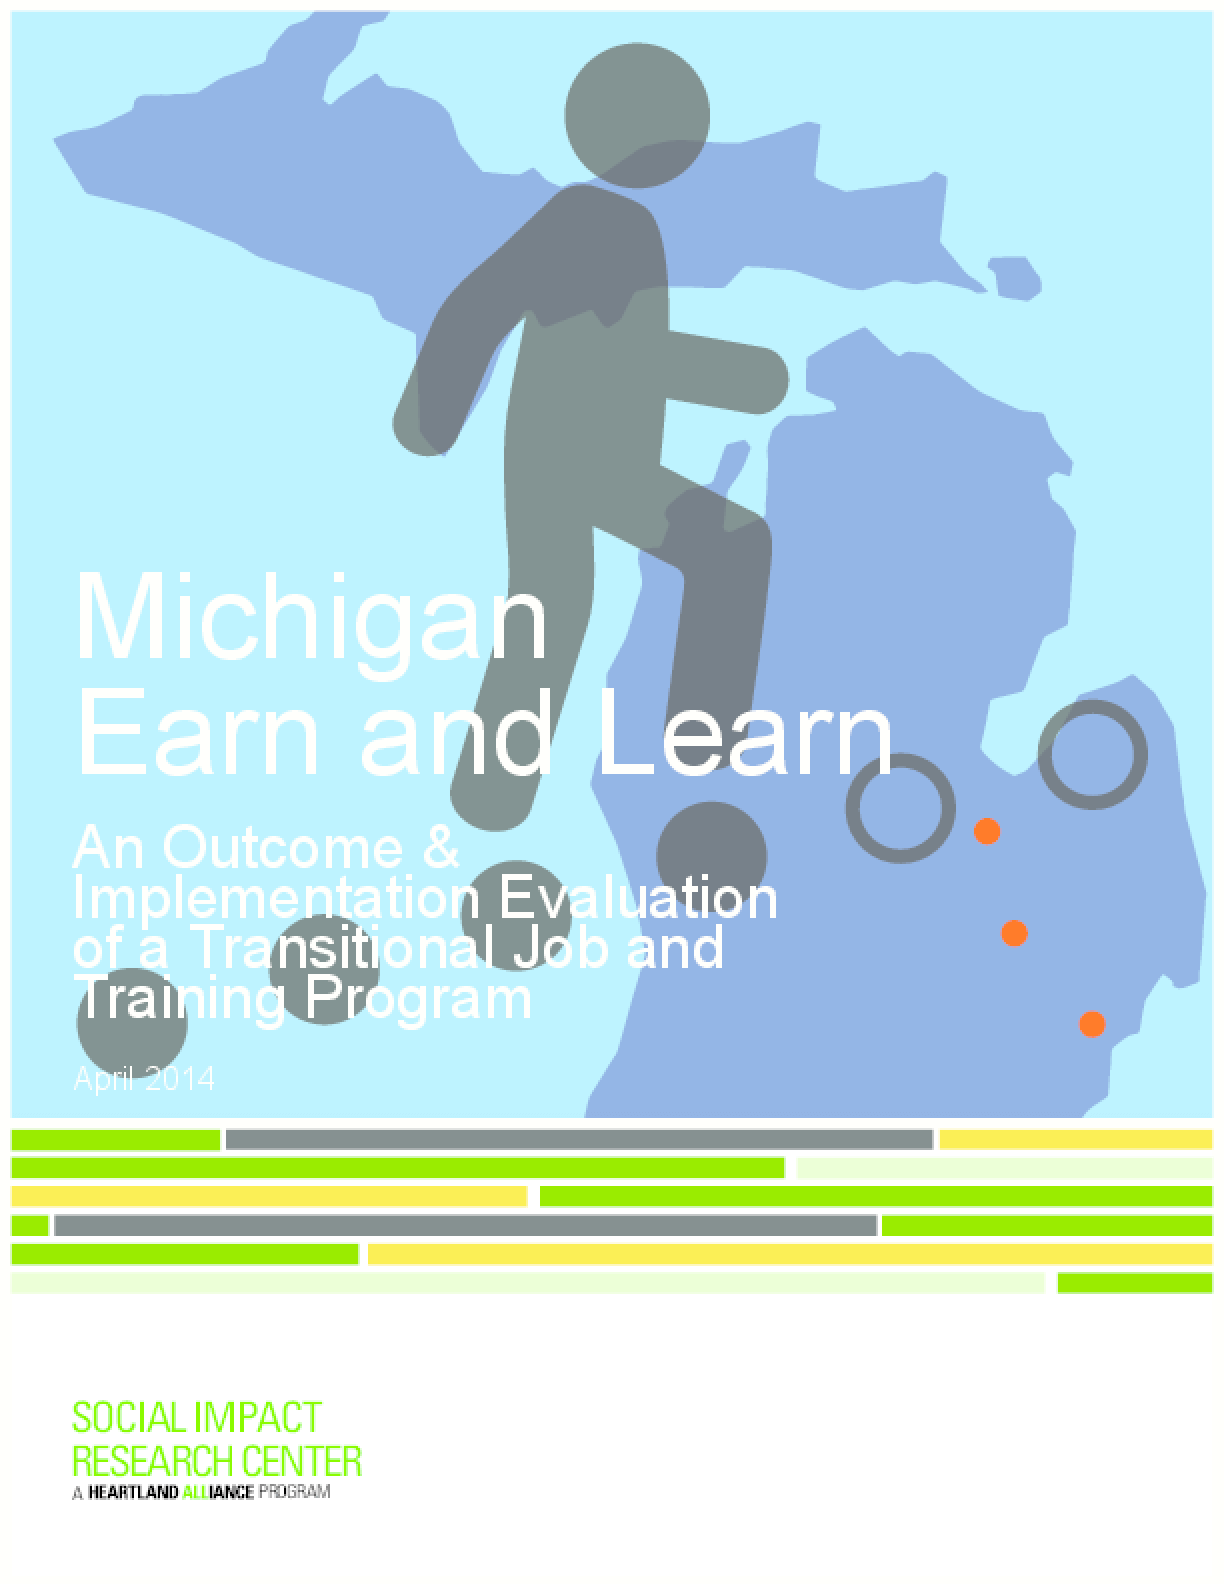 Michigan Earn and Learn: An Outcome & Implementation Evaluation of a Transitional Job and Training Program